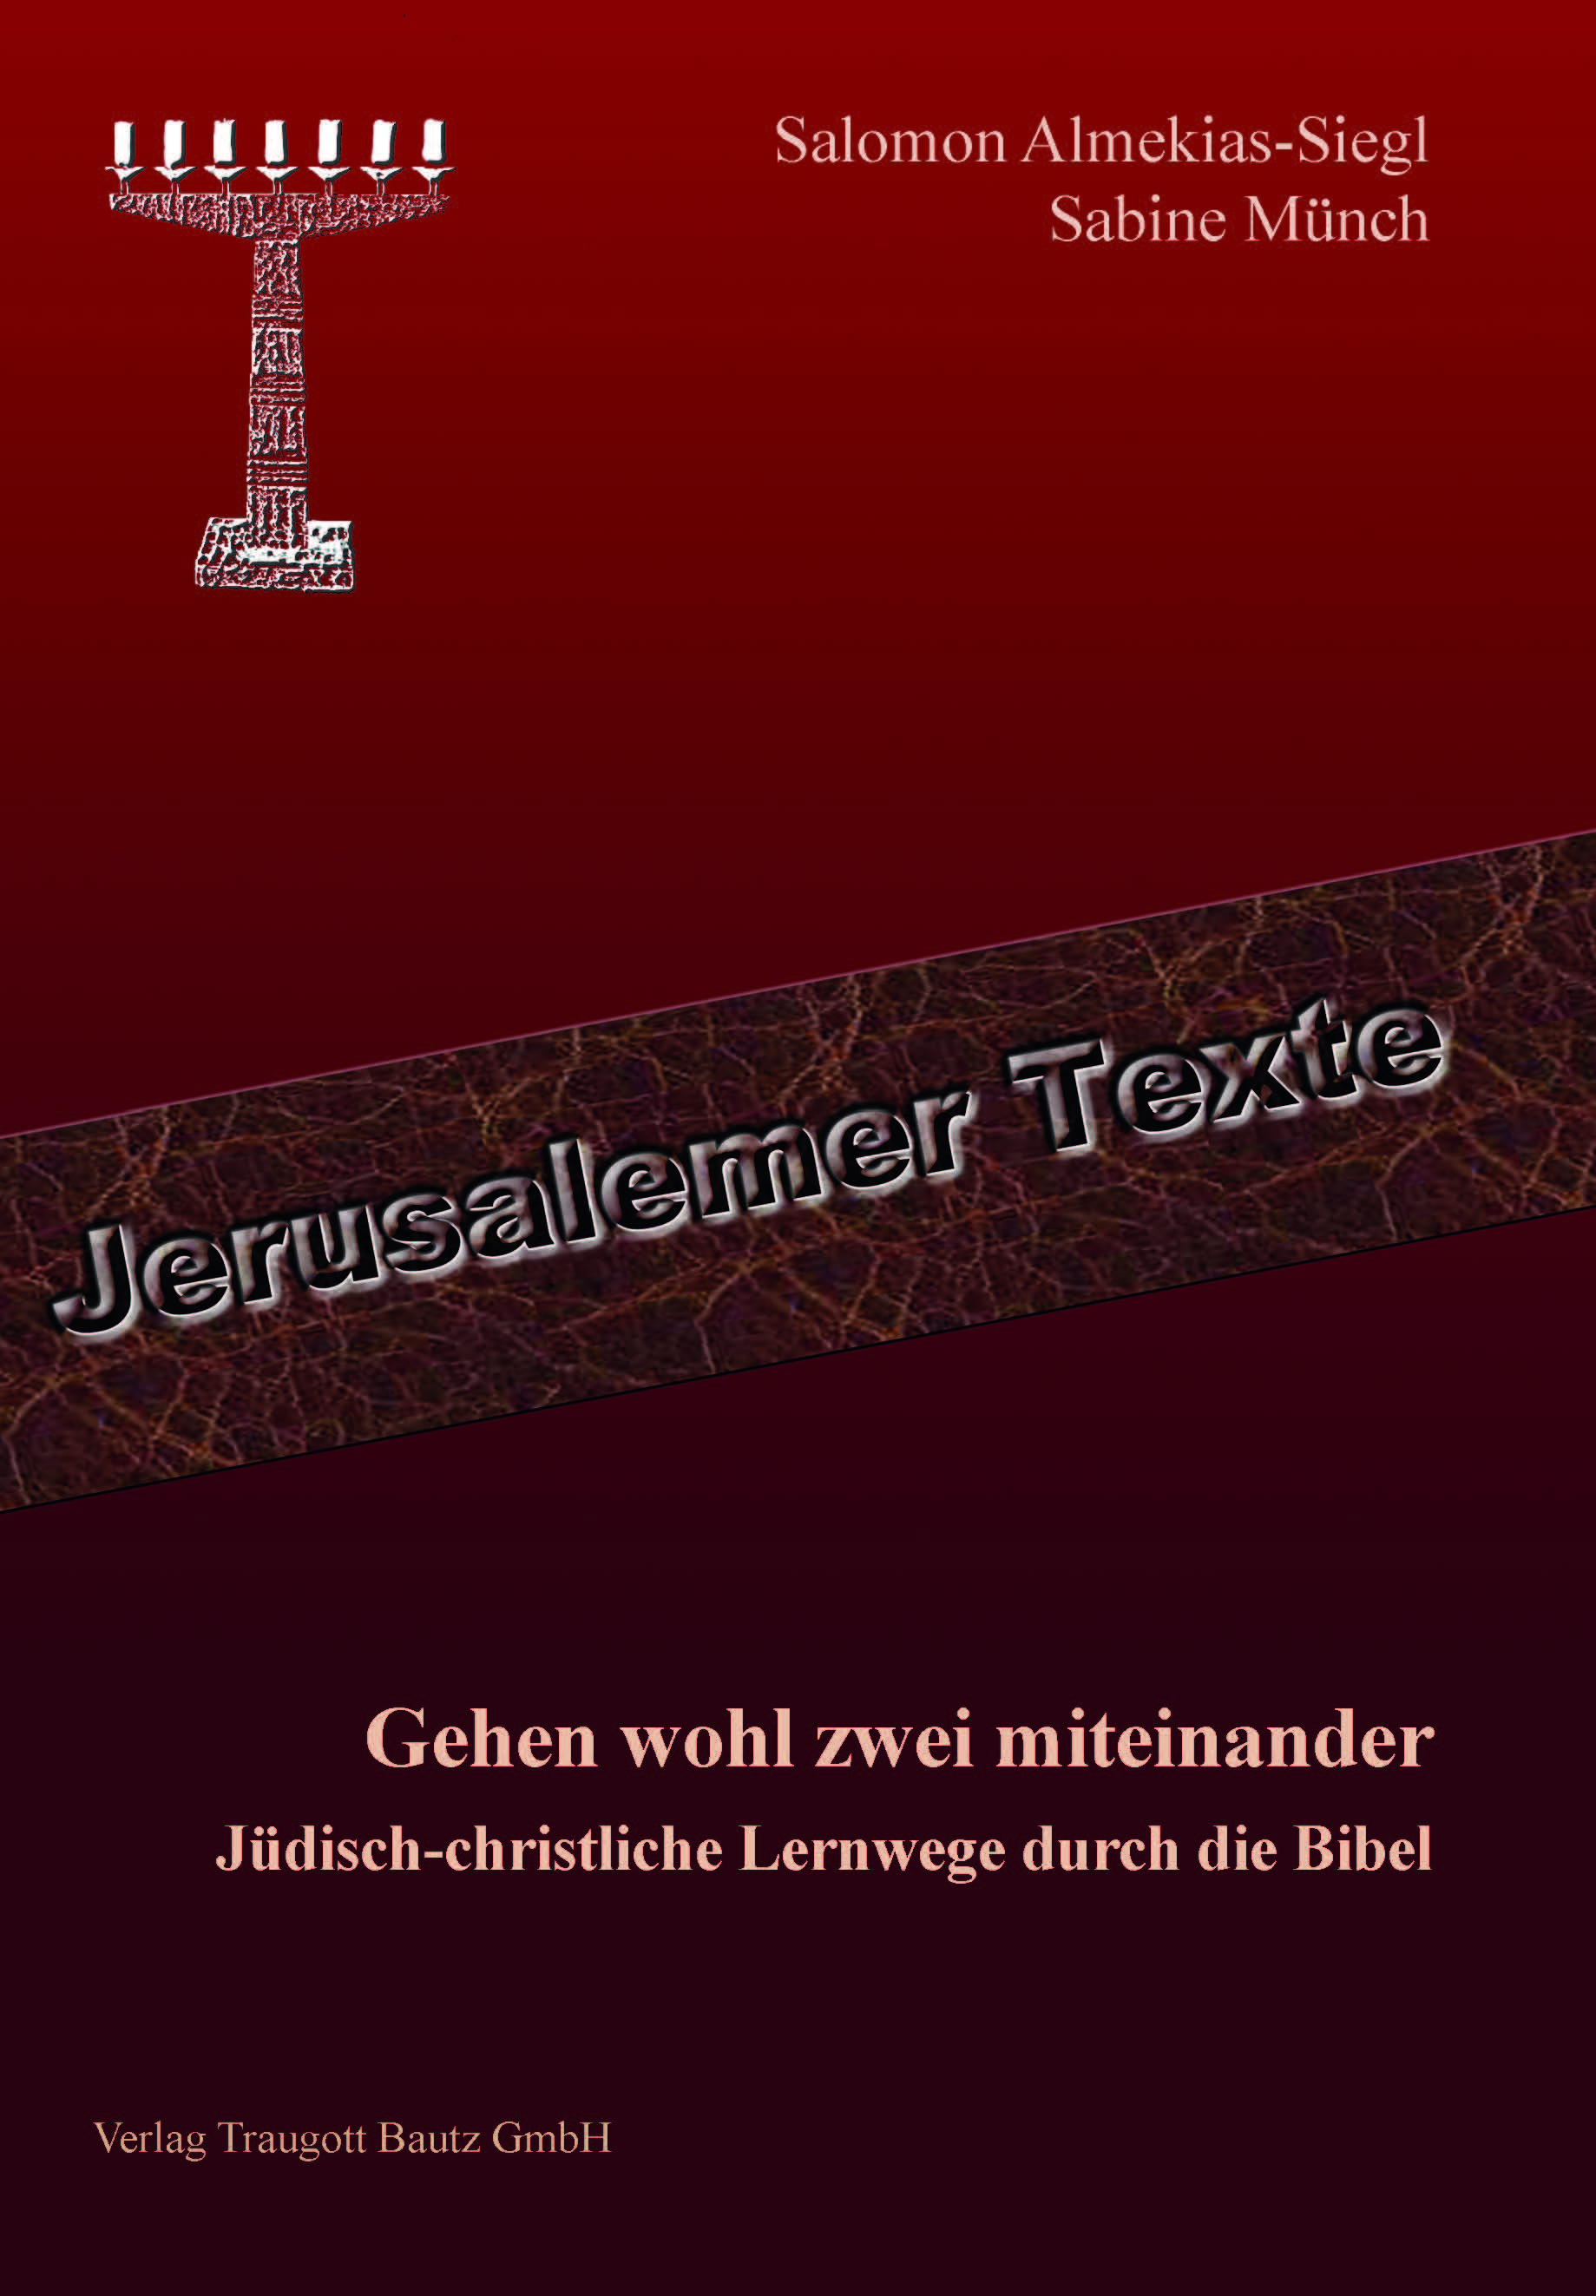 jerusalem texte band16